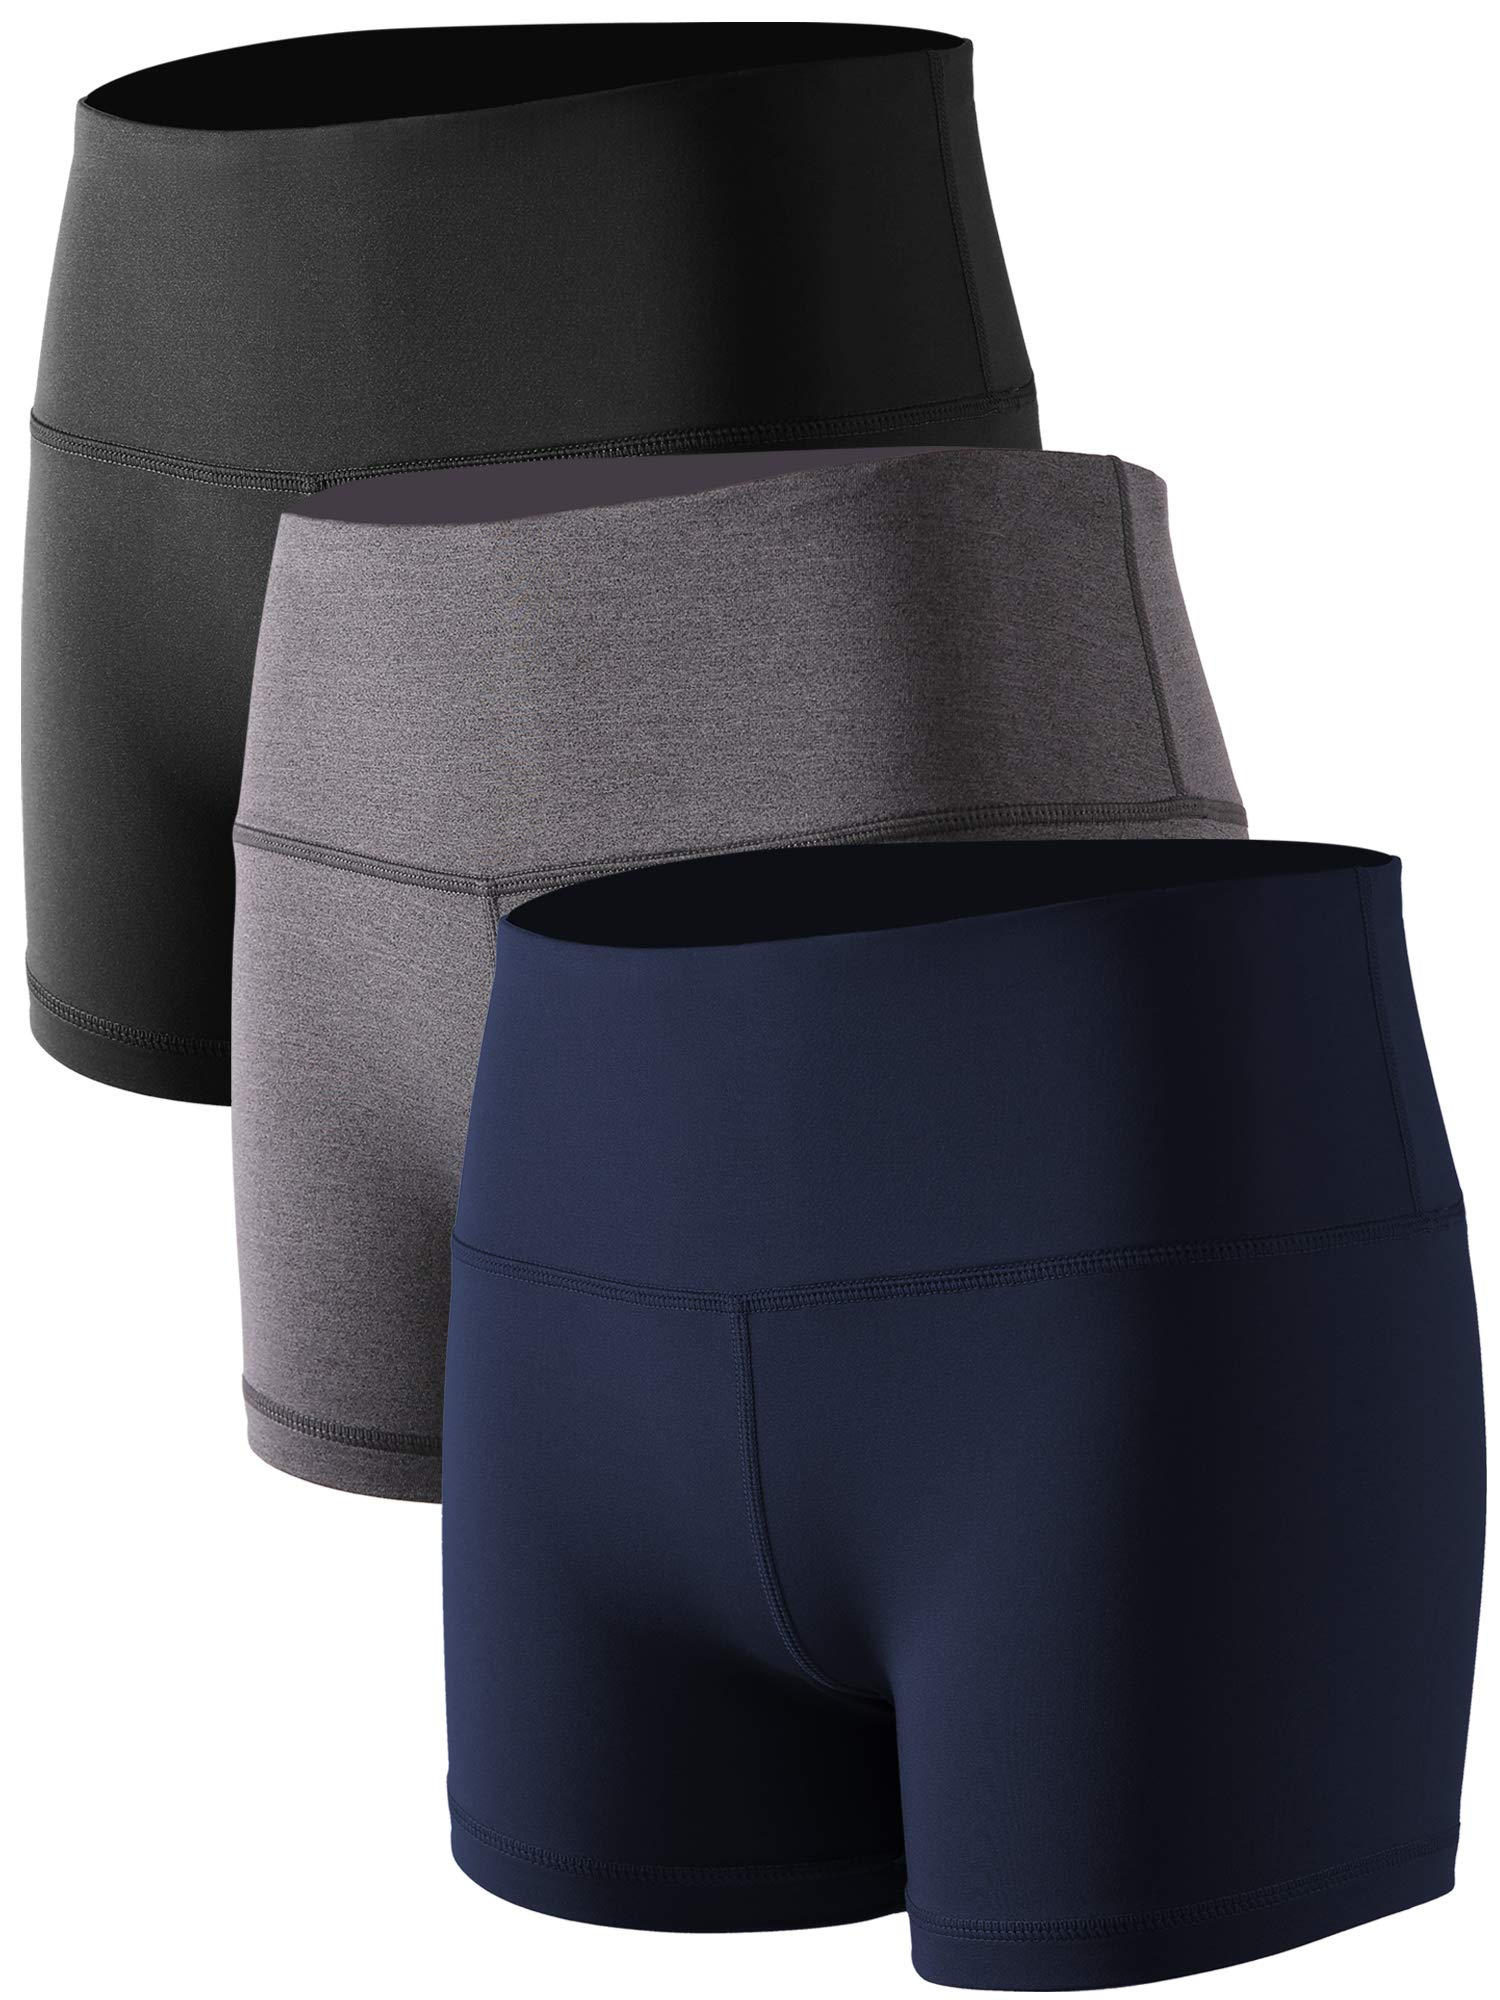 Cadmus Women's High Waist Athletic Sport Workout Shorts with Pocket,3 Pack,05,Black,Grey,Navy Blue,X-Small by Cadmus